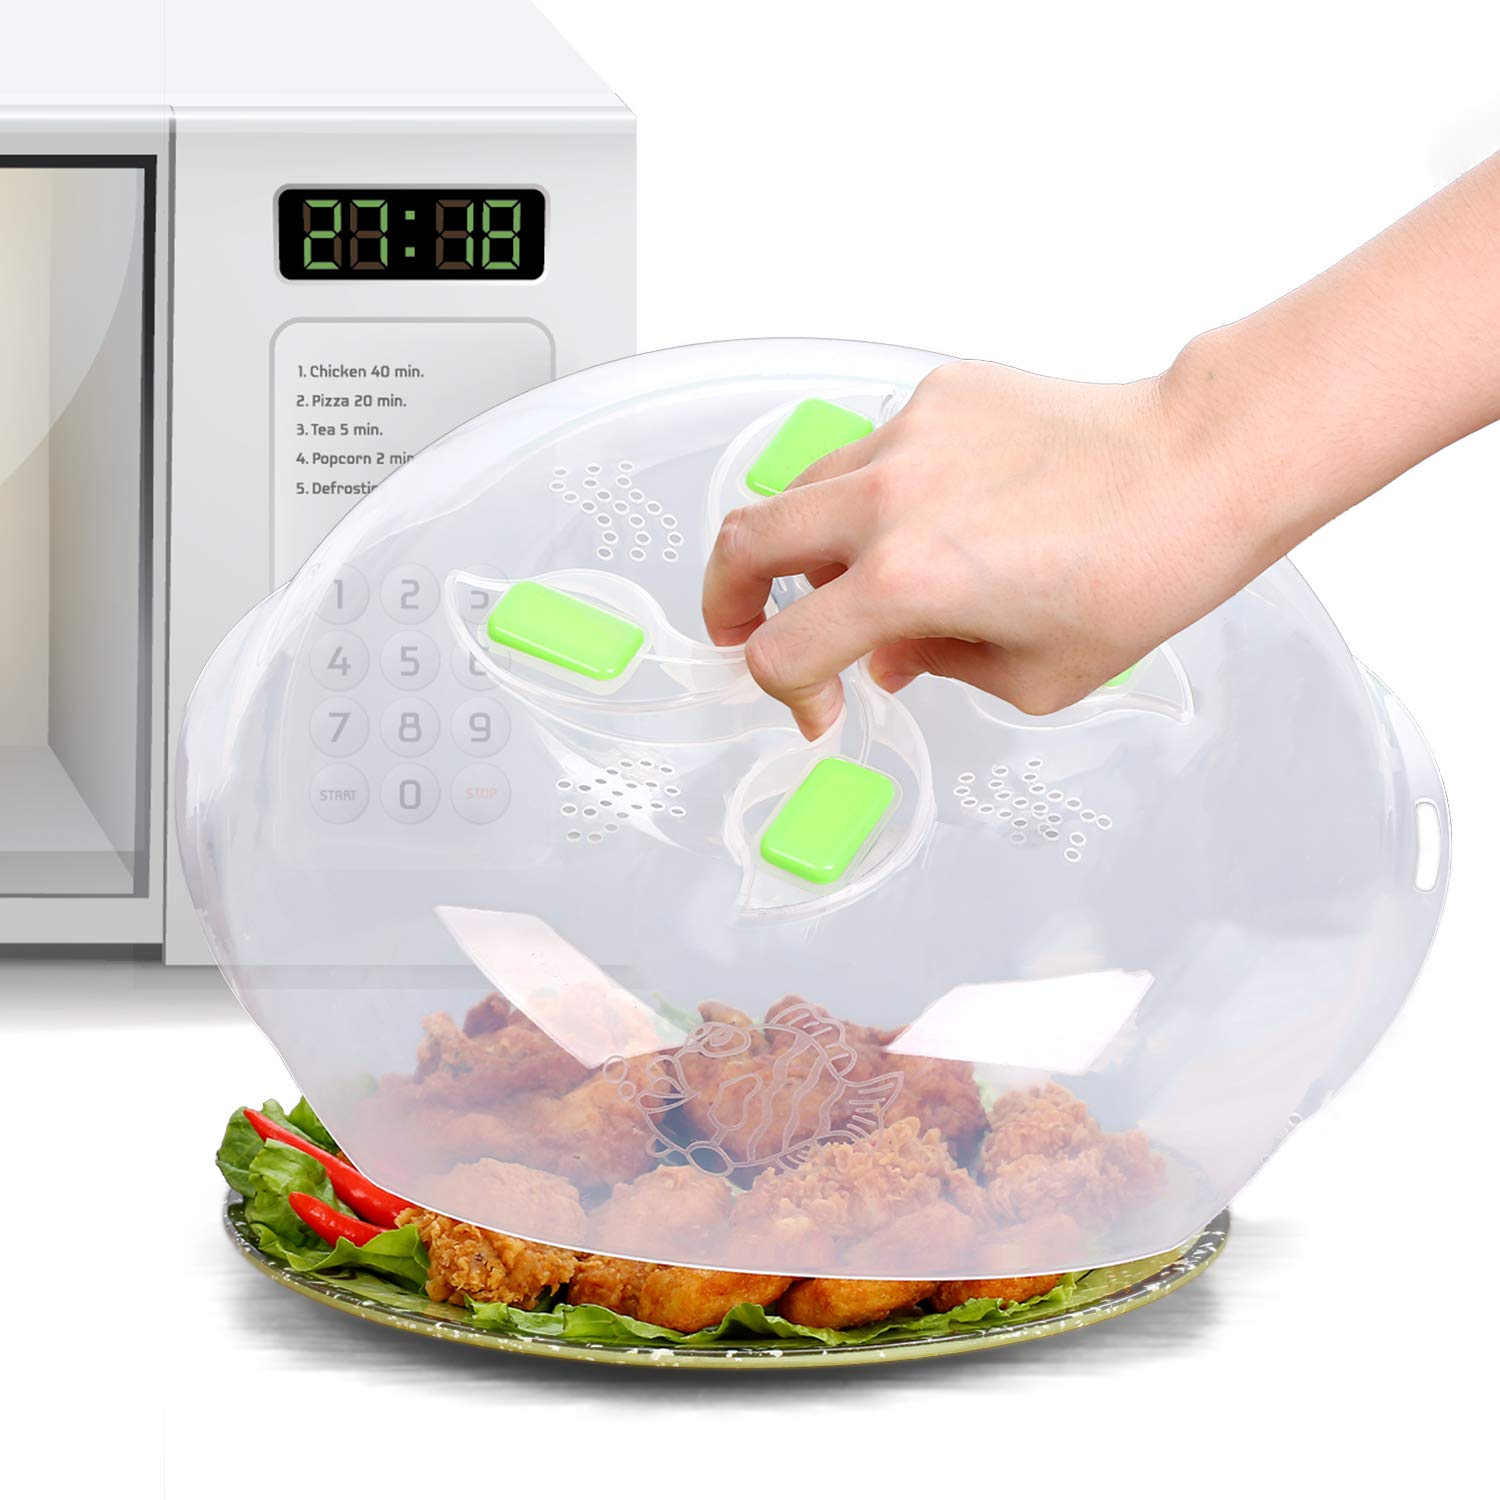 Microwave plate cover, Second Generation, prevent food splatter cover, product -Magnetic adsorption function. safe convenient with steam vent, Food-grade PP